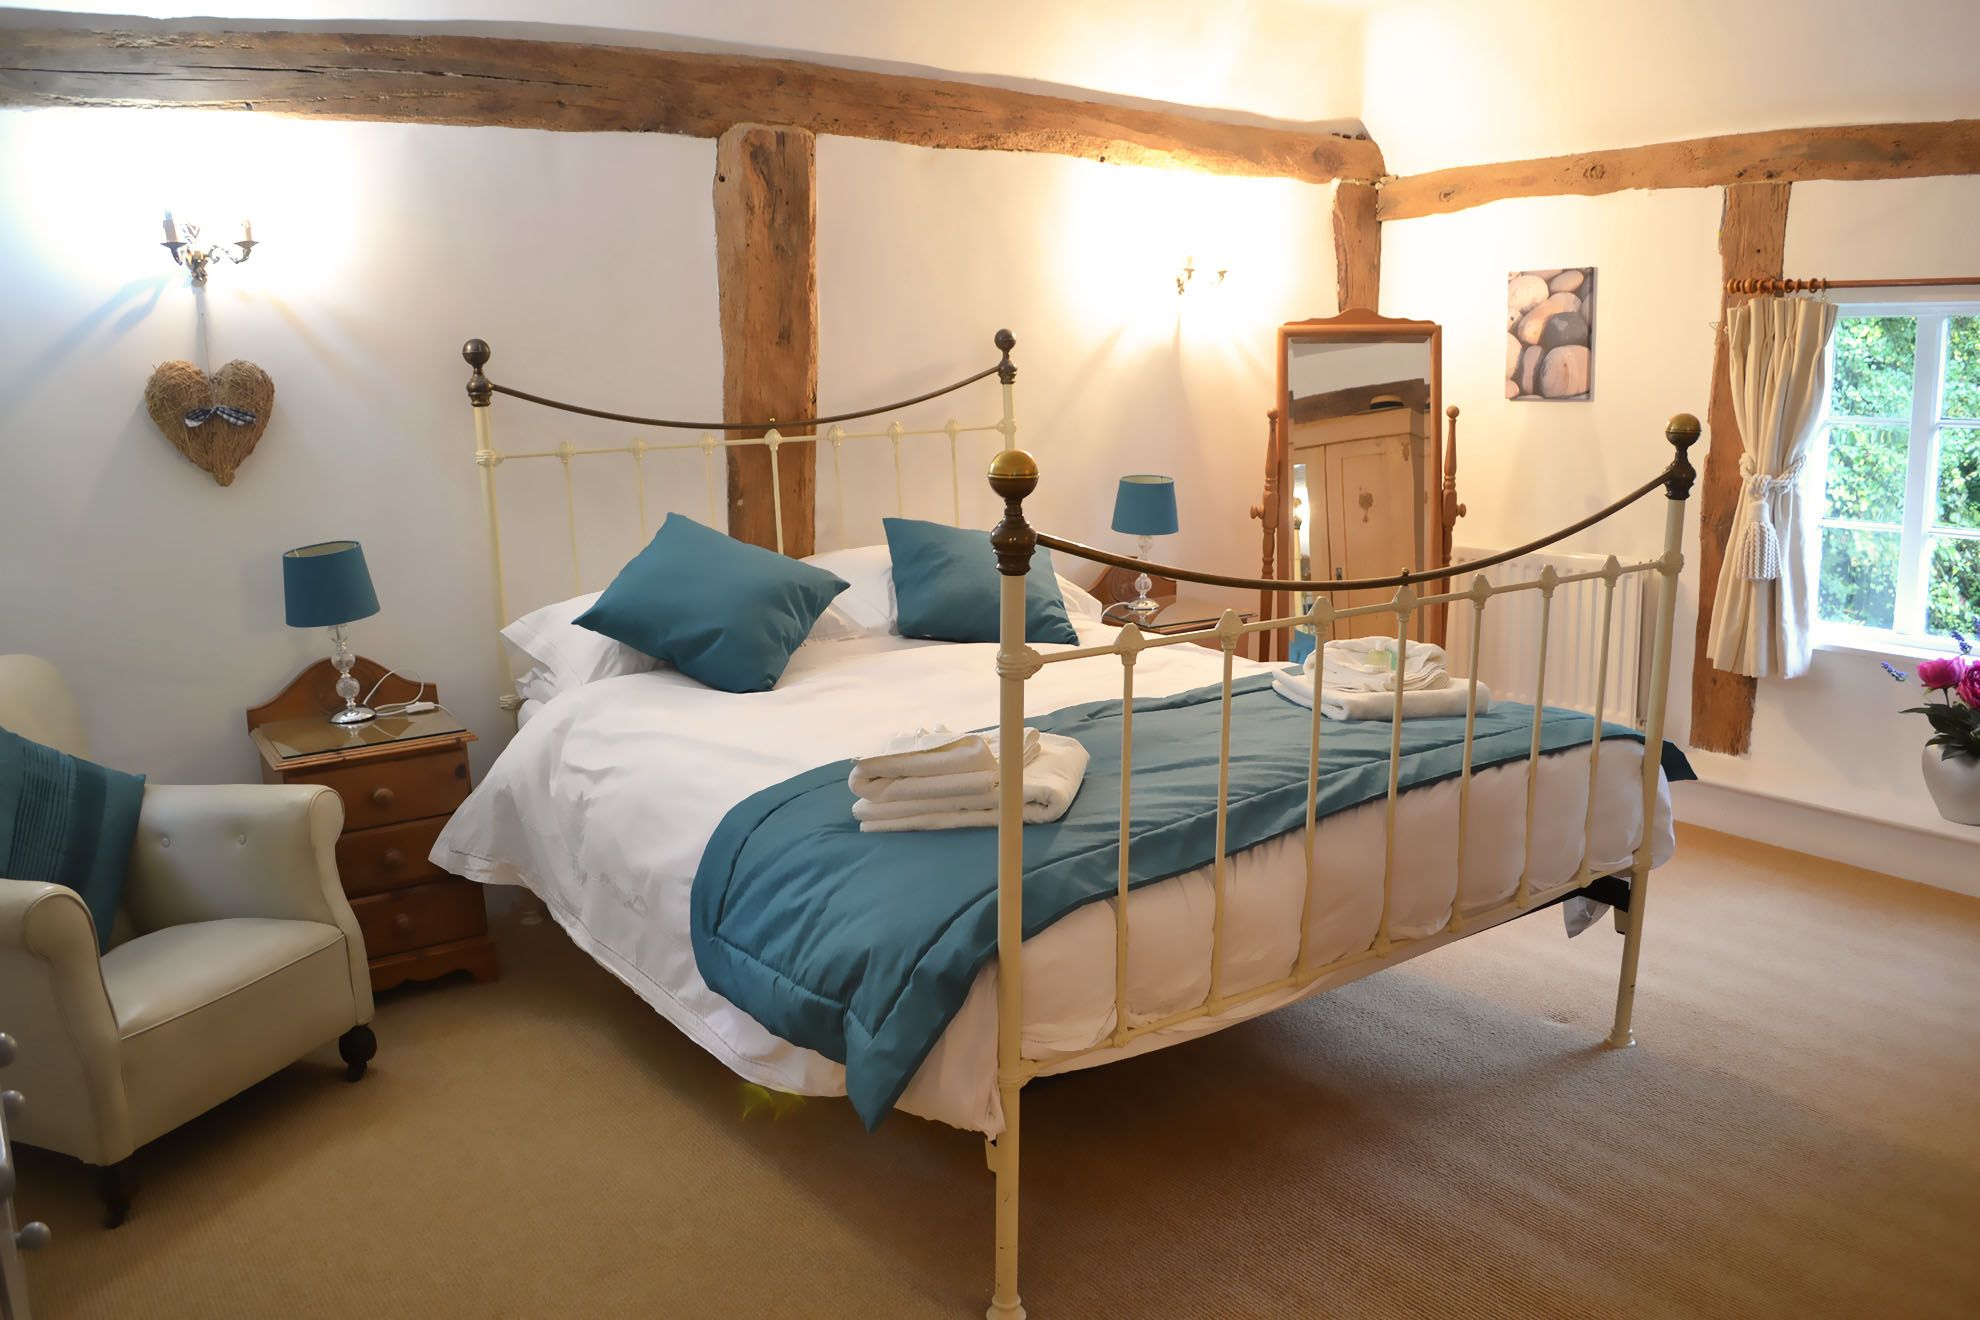 The Farmhouse first floor: Master bedroom with 5' double bed & en suite bathroom